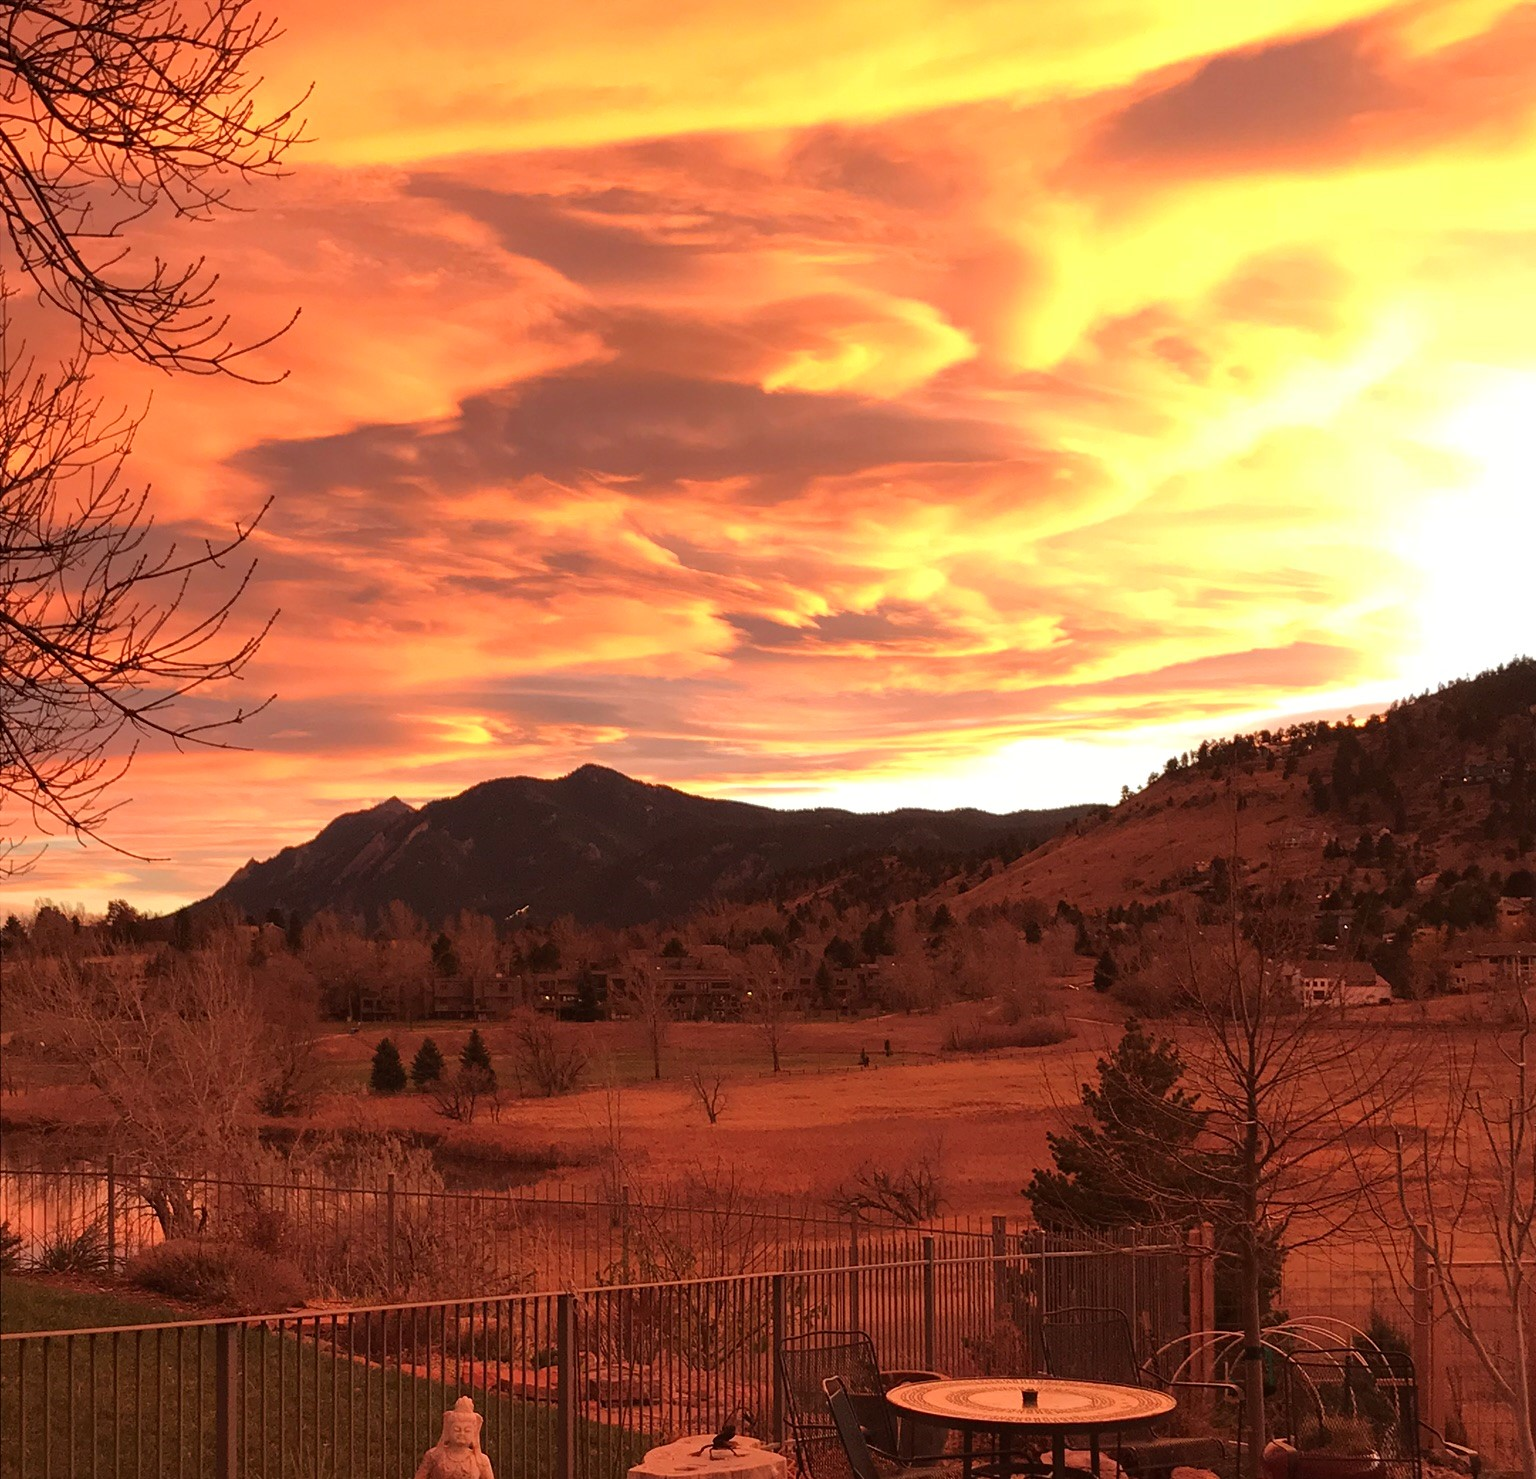 Barbee's backyard at sunset in Boulder, Colorado.